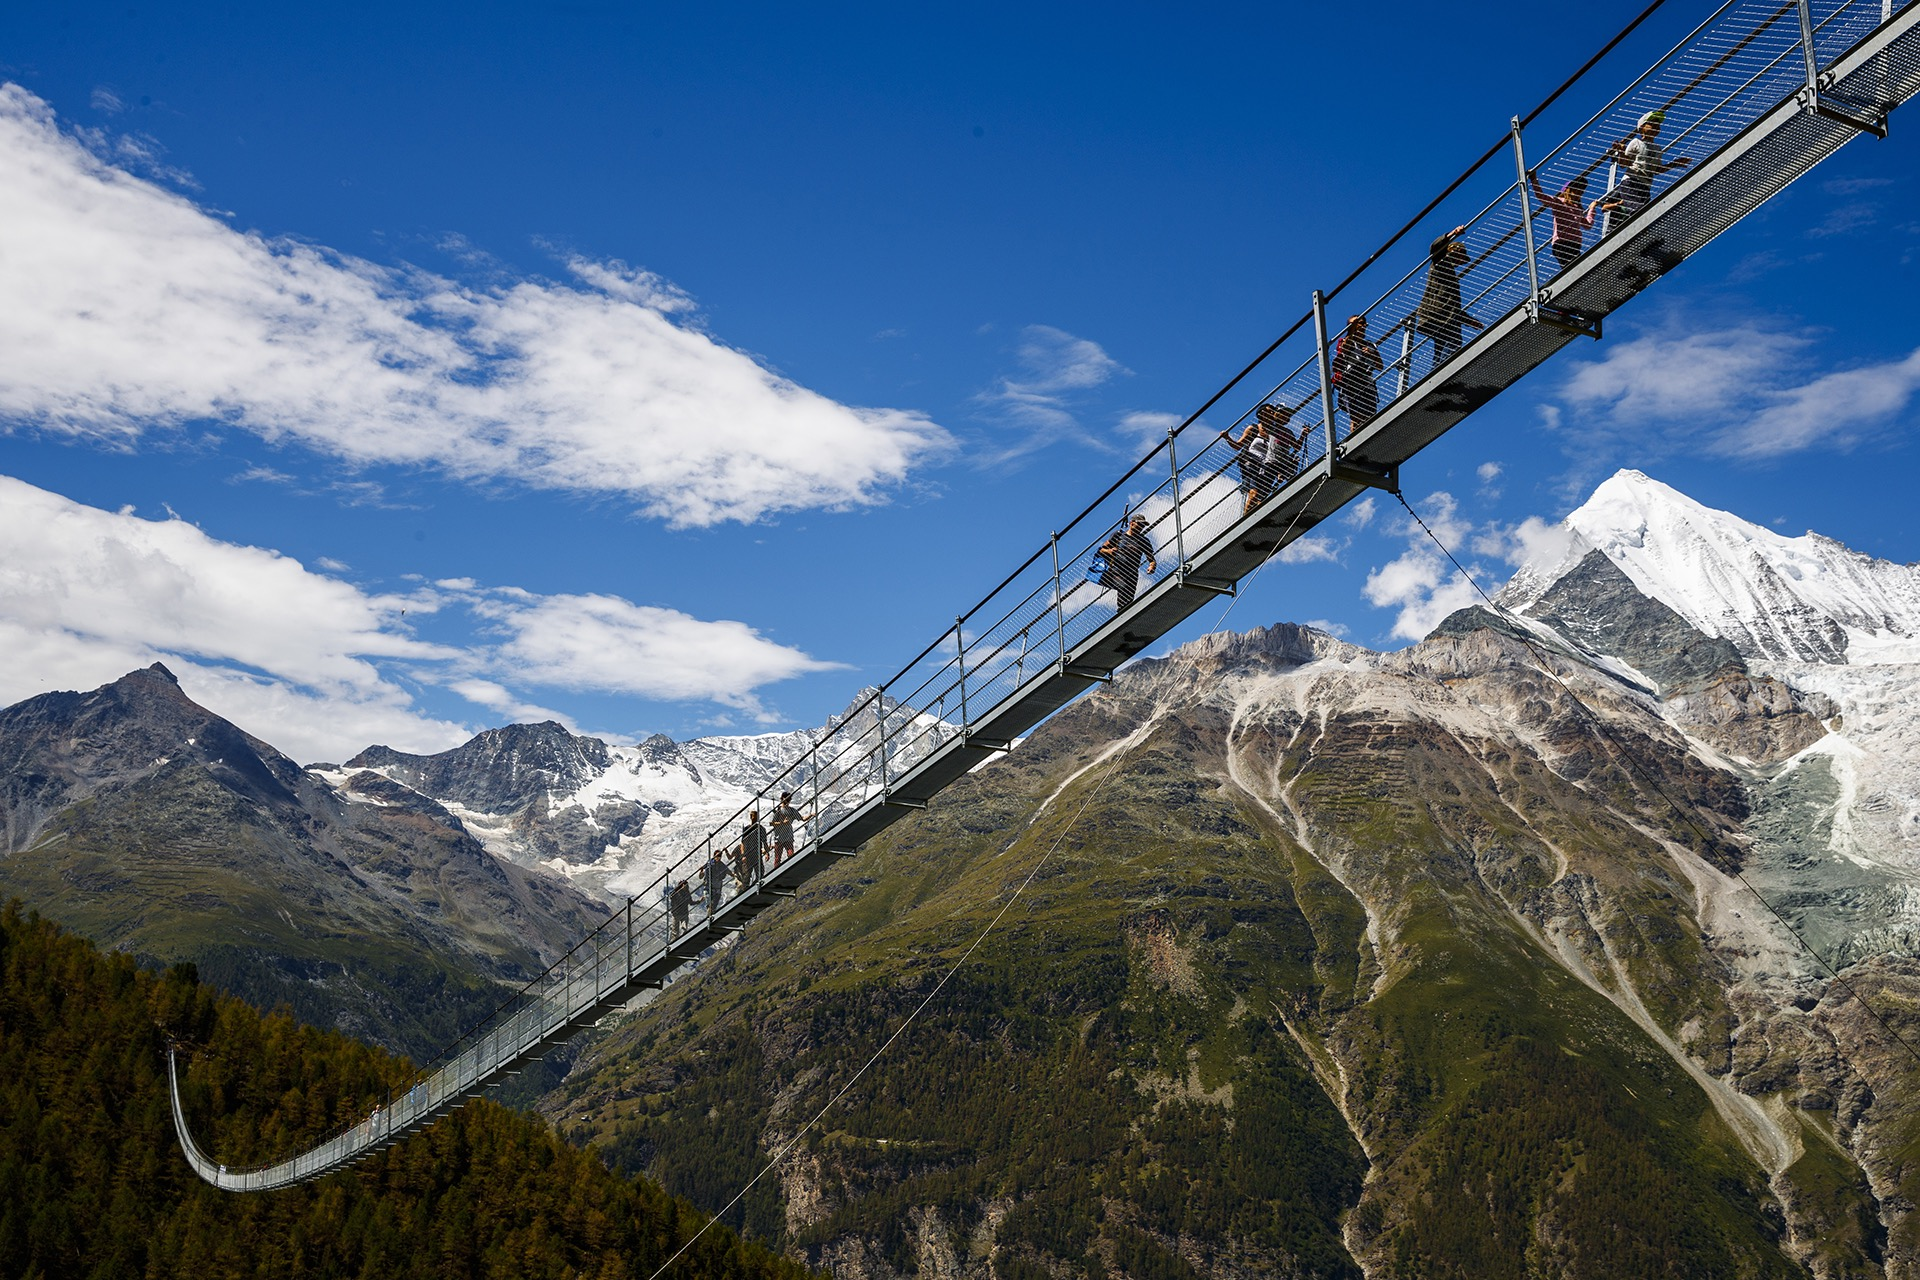 """People walk on the """"Europabruecke"""", that is supposed to be the world's longest pedestrian suspension bridge with a length of 494m, after the official inauguration of the construction in Randa, Switzerland, on Saturday, July 29, 2017. The bridge is situated on the Europaweg that connects the villages of Zermatt and Graechen. (Valentin Flauraud/Keystone via AP)"""